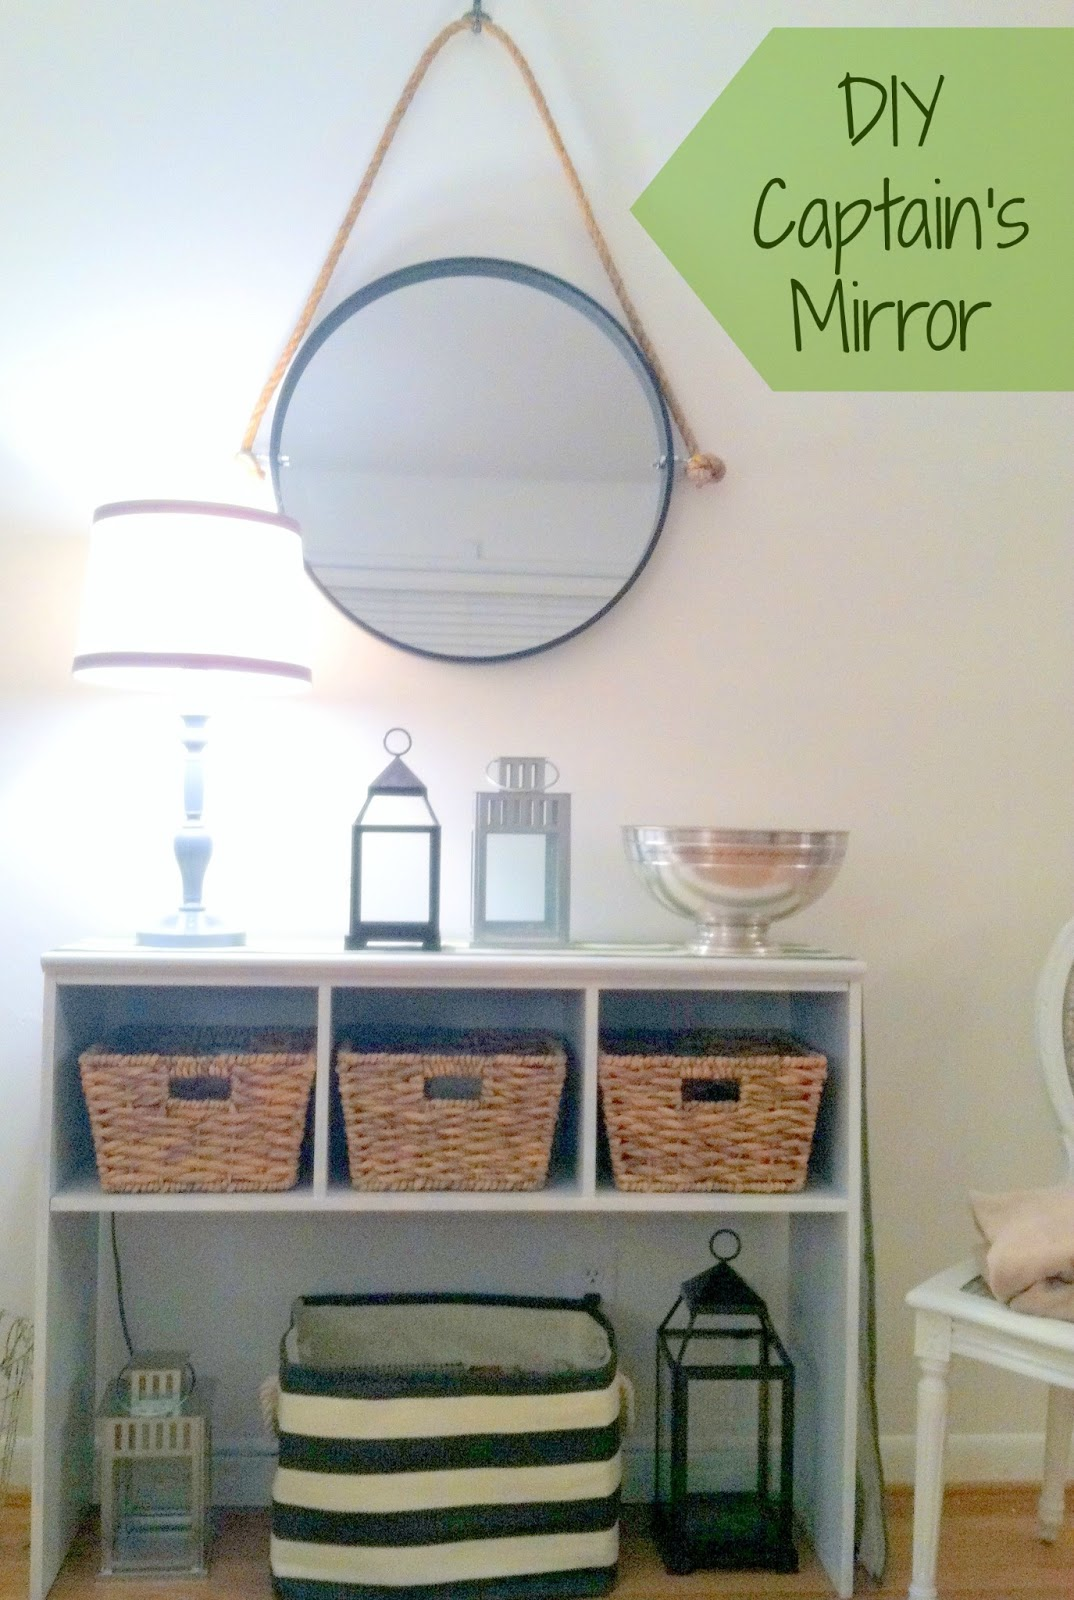 For Now One Of The Walls Is Home To Our Former Entry Way Table. It Was Sad  Sitting There All Alone, So We Framed It Up With An Amazing Captains Mirror  That ...